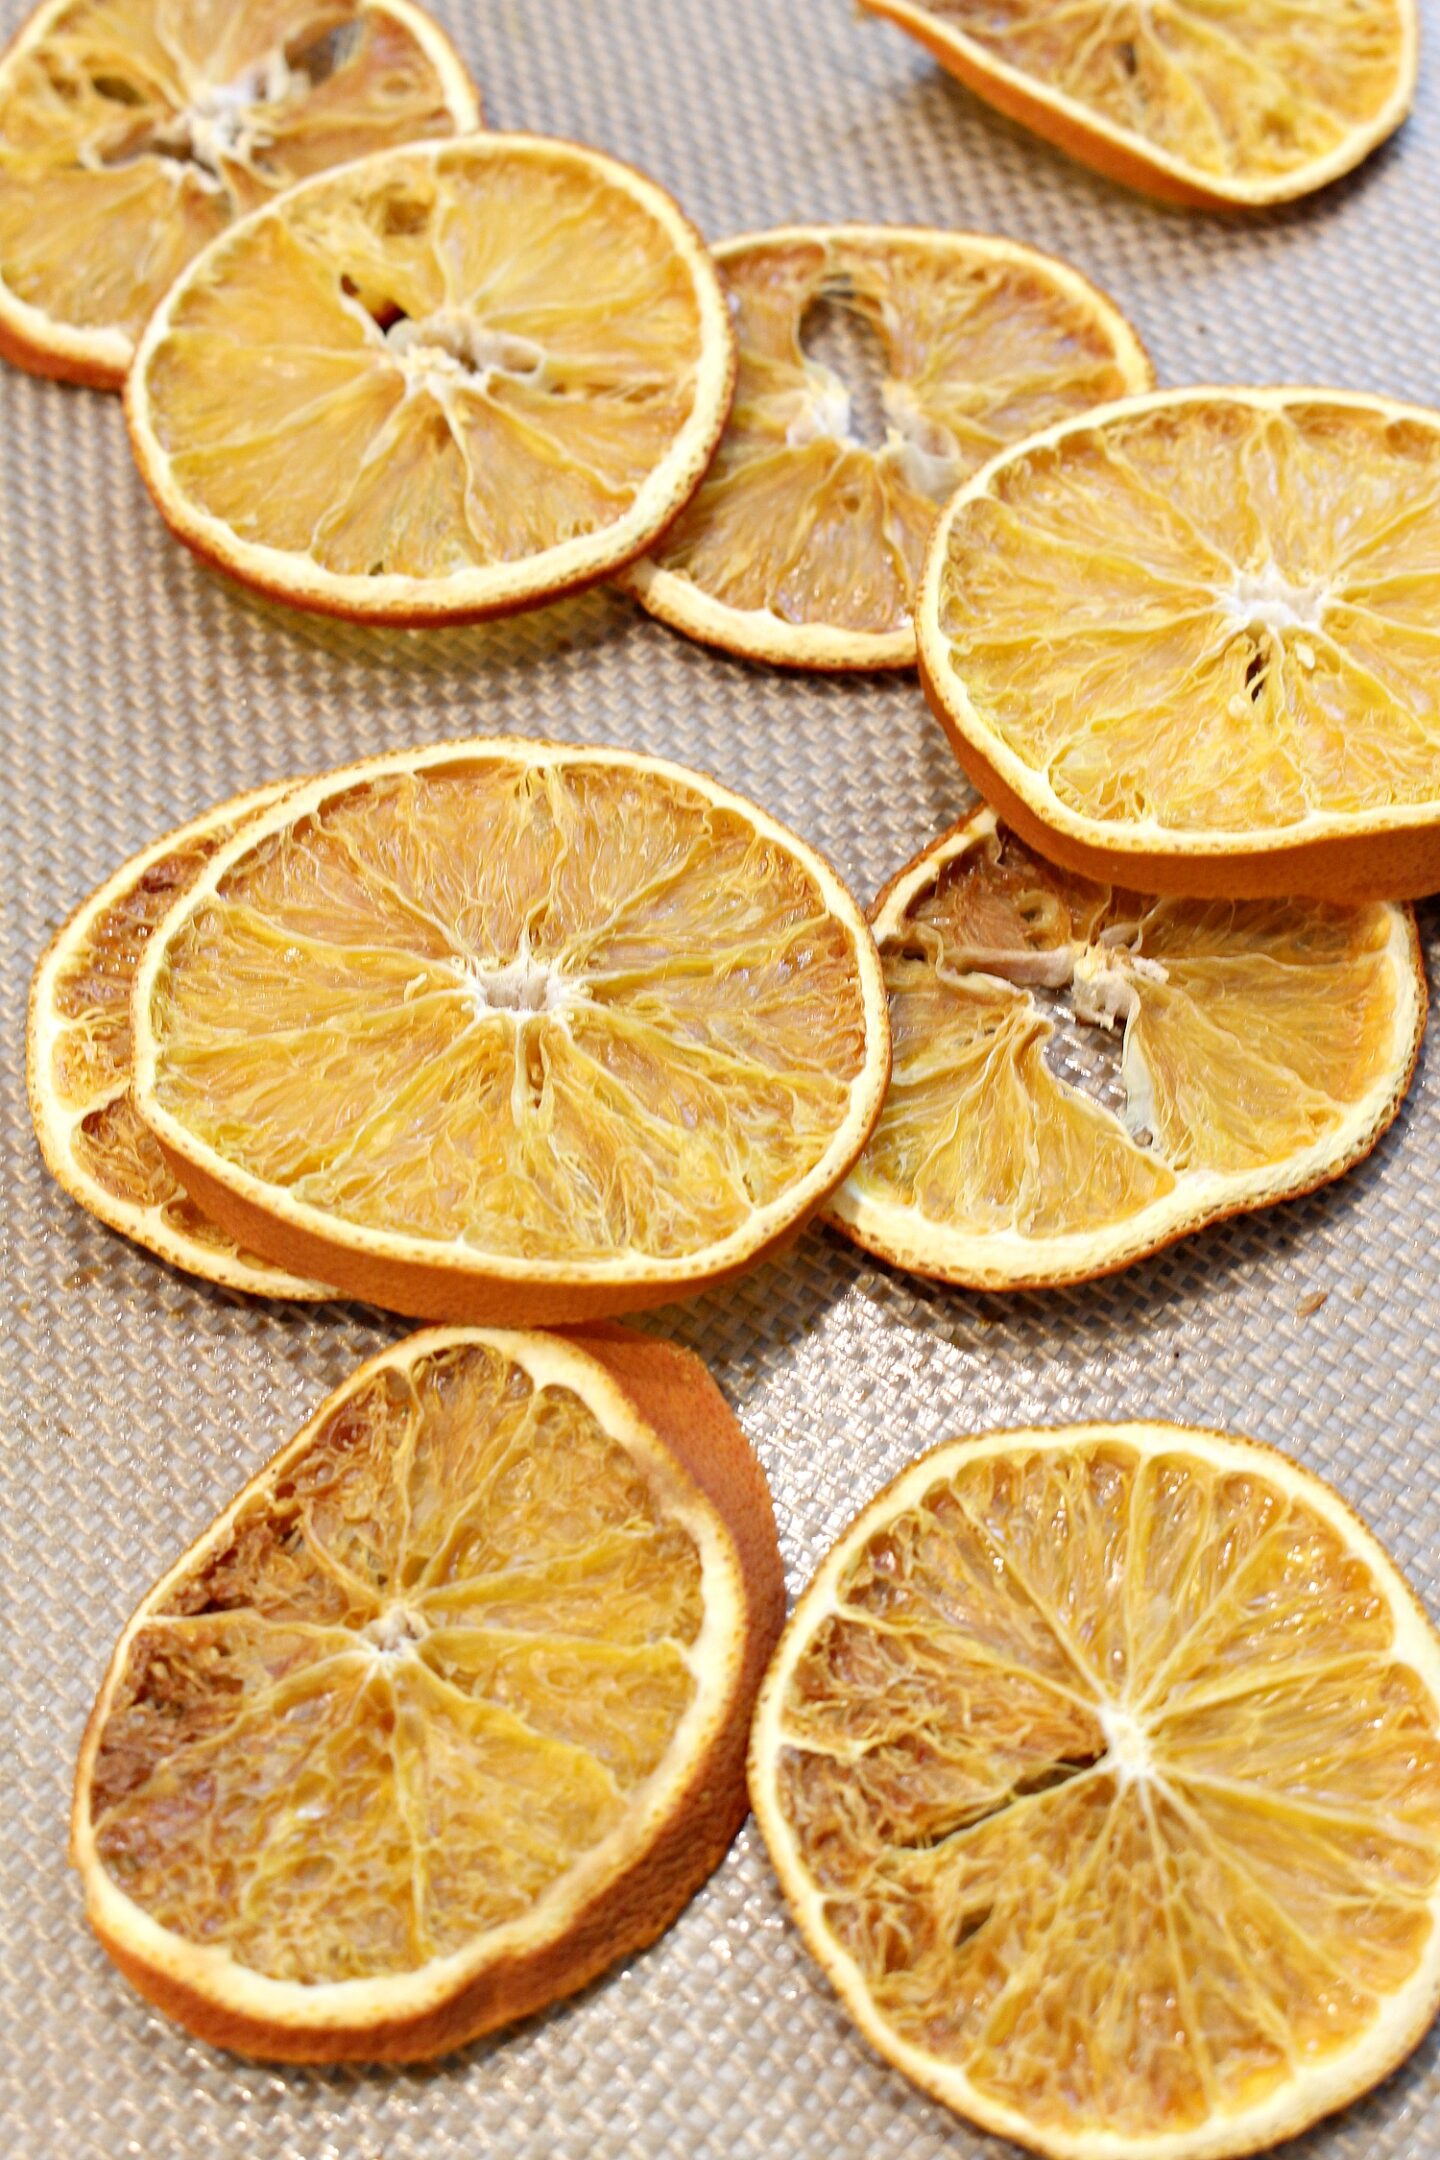 How to Dry Orange Slices for Crafts